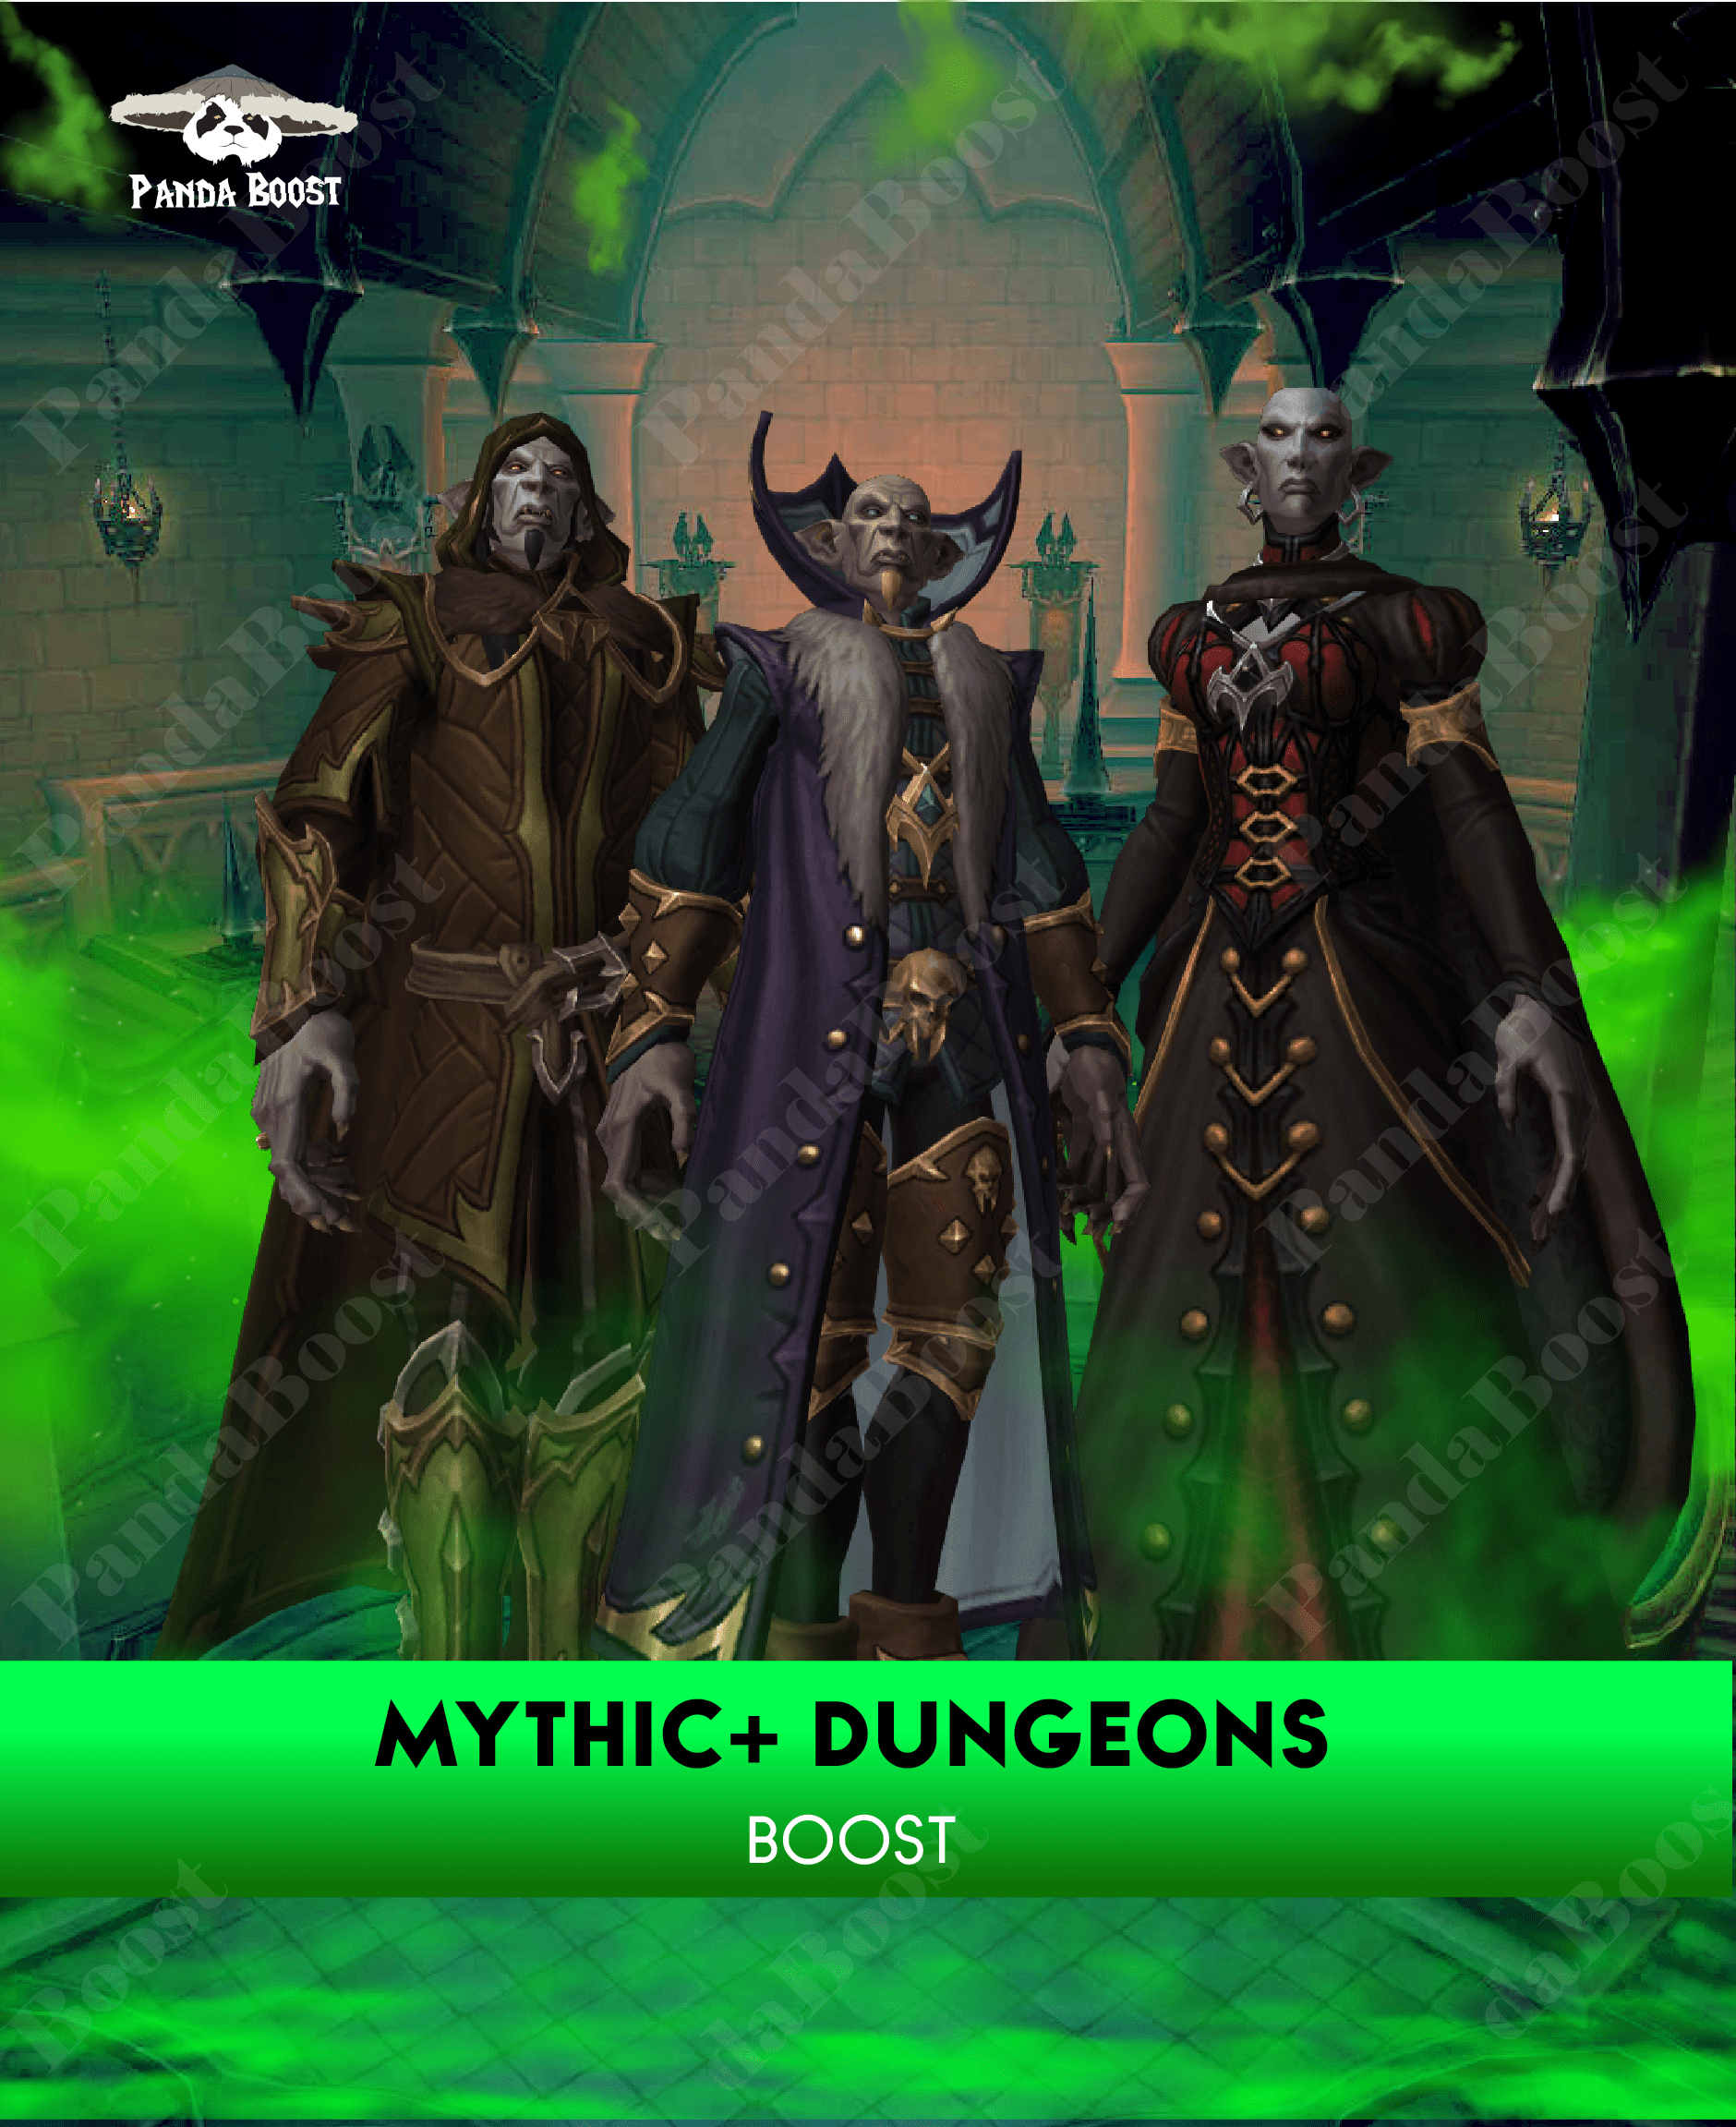 Mythic + Dungeons Boost